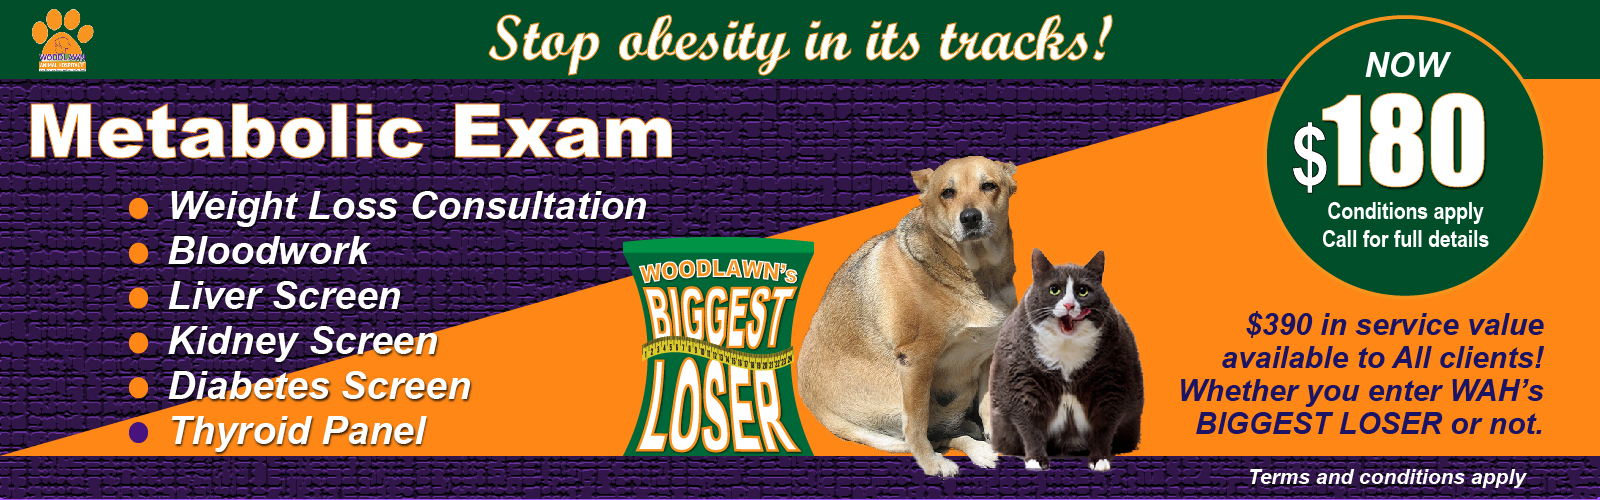 WAH's Obesity Promotion for The Biggest Loser